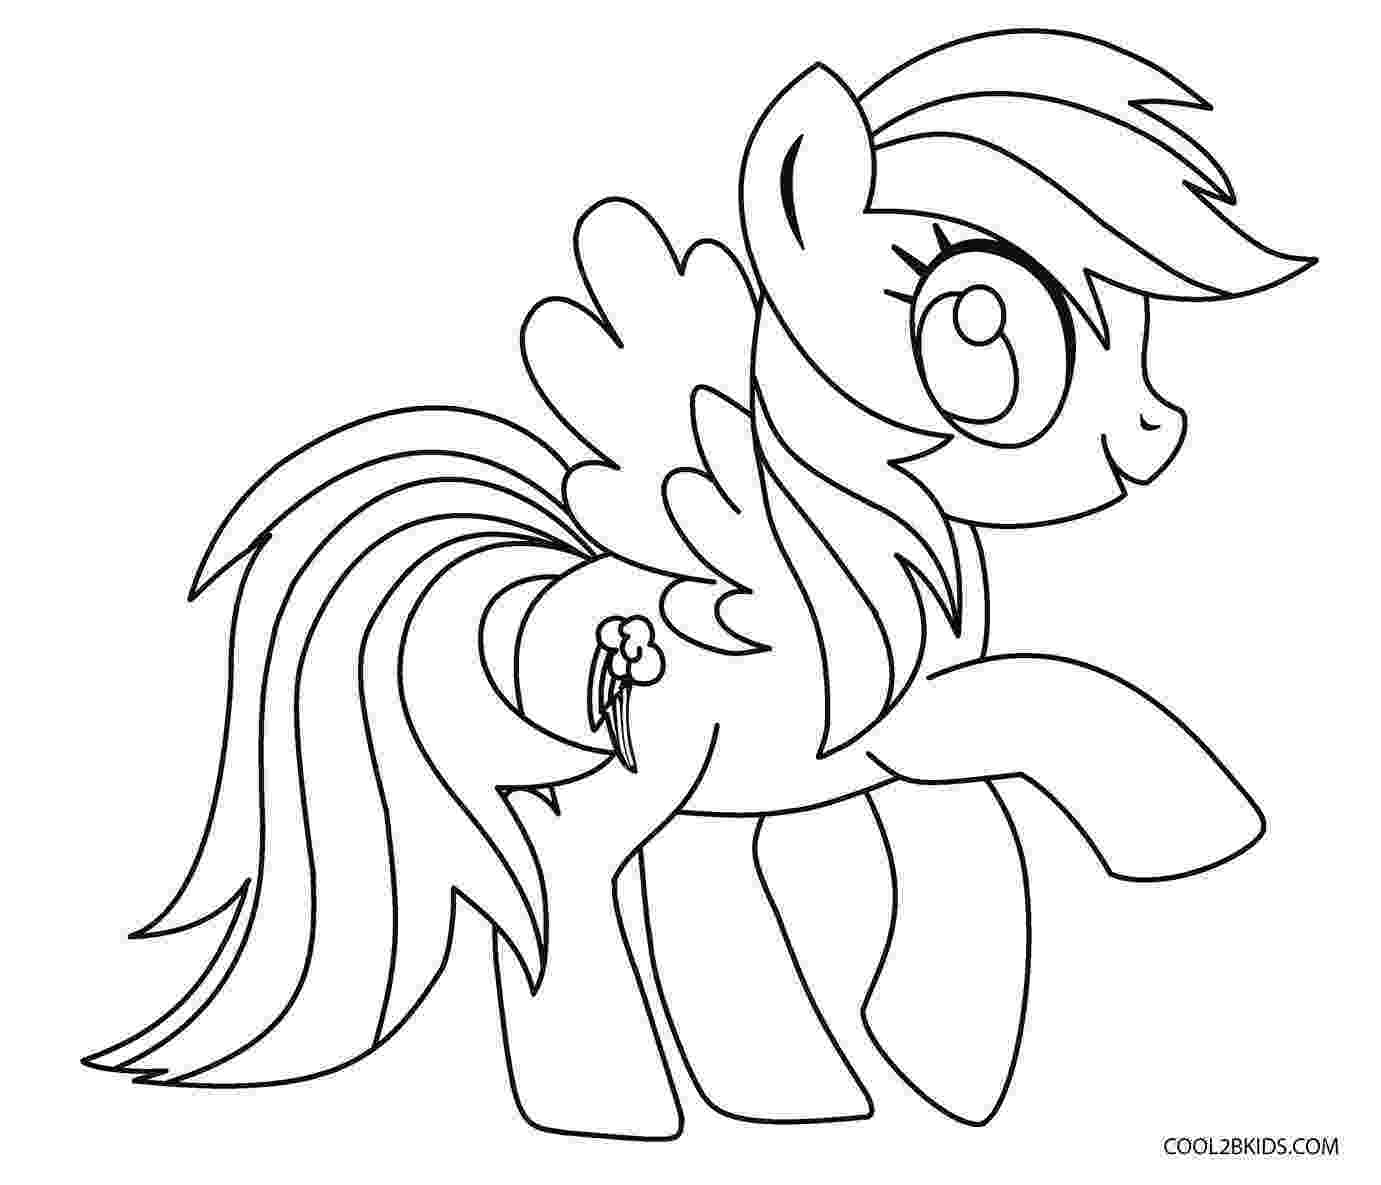 my little pony pages my little pony fluttershy coloring pages for kids little my pages pony